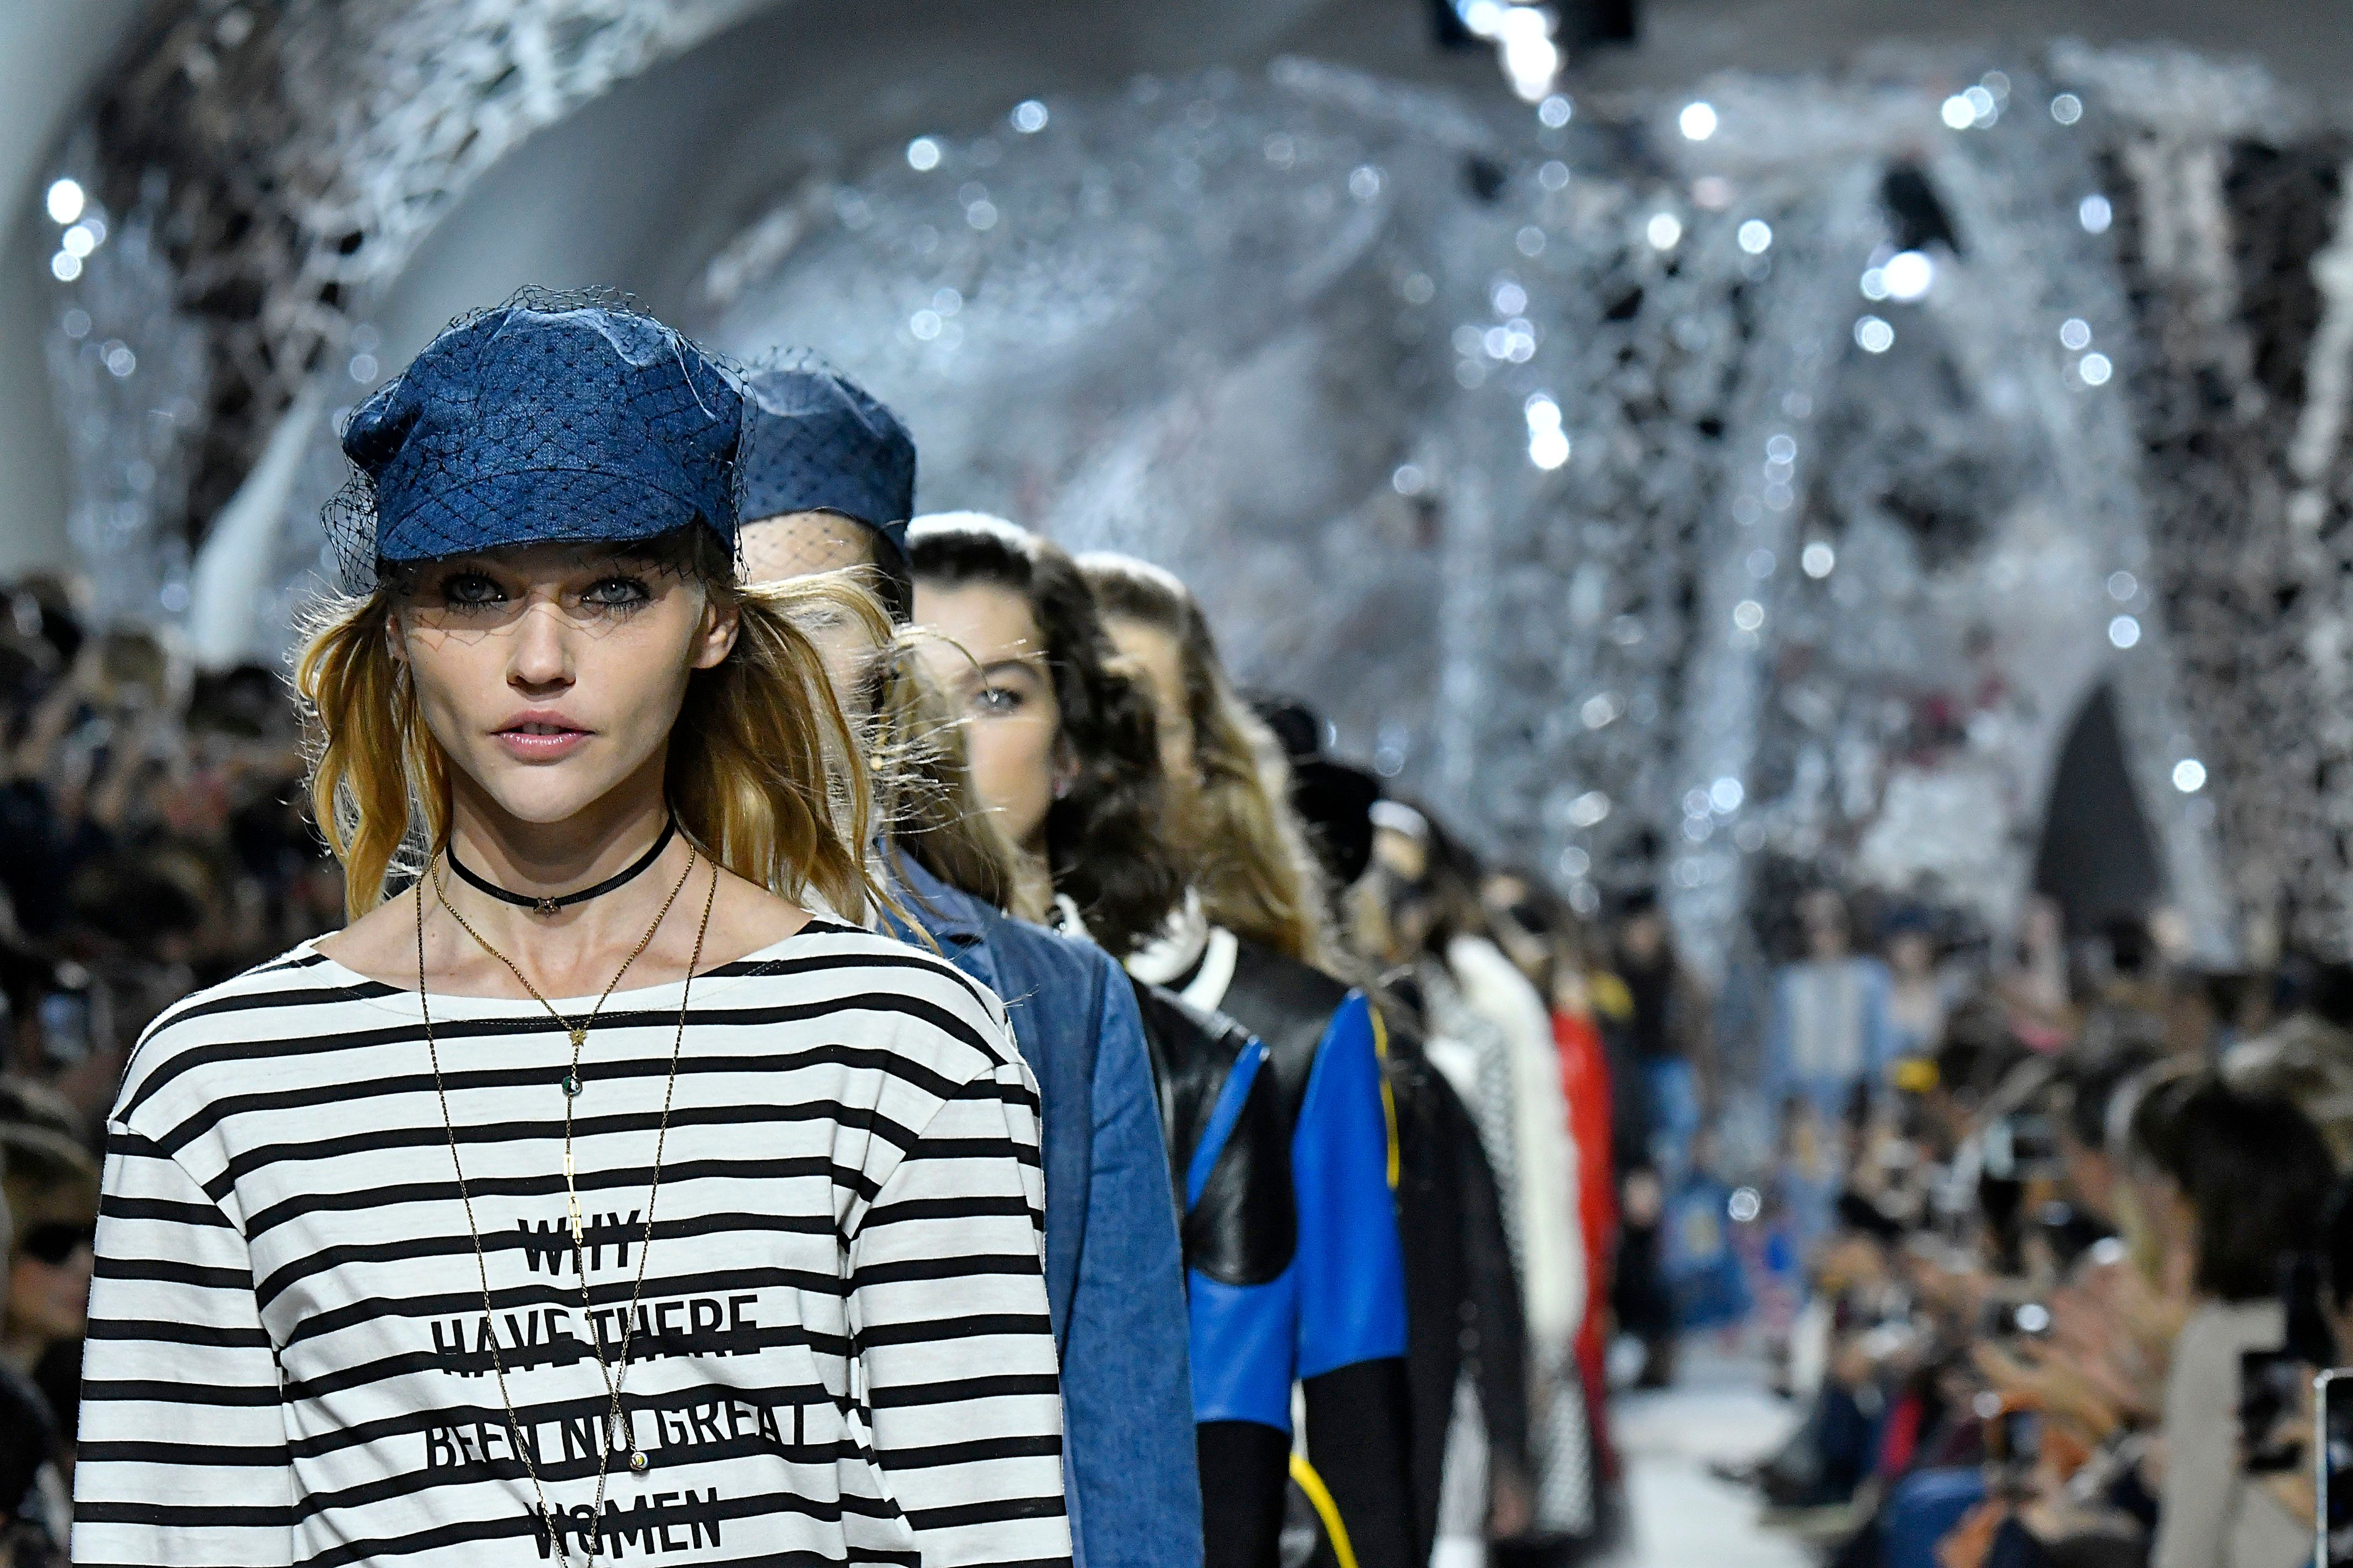 Dior Makes Another Feminist Fashion Statement On The Runway